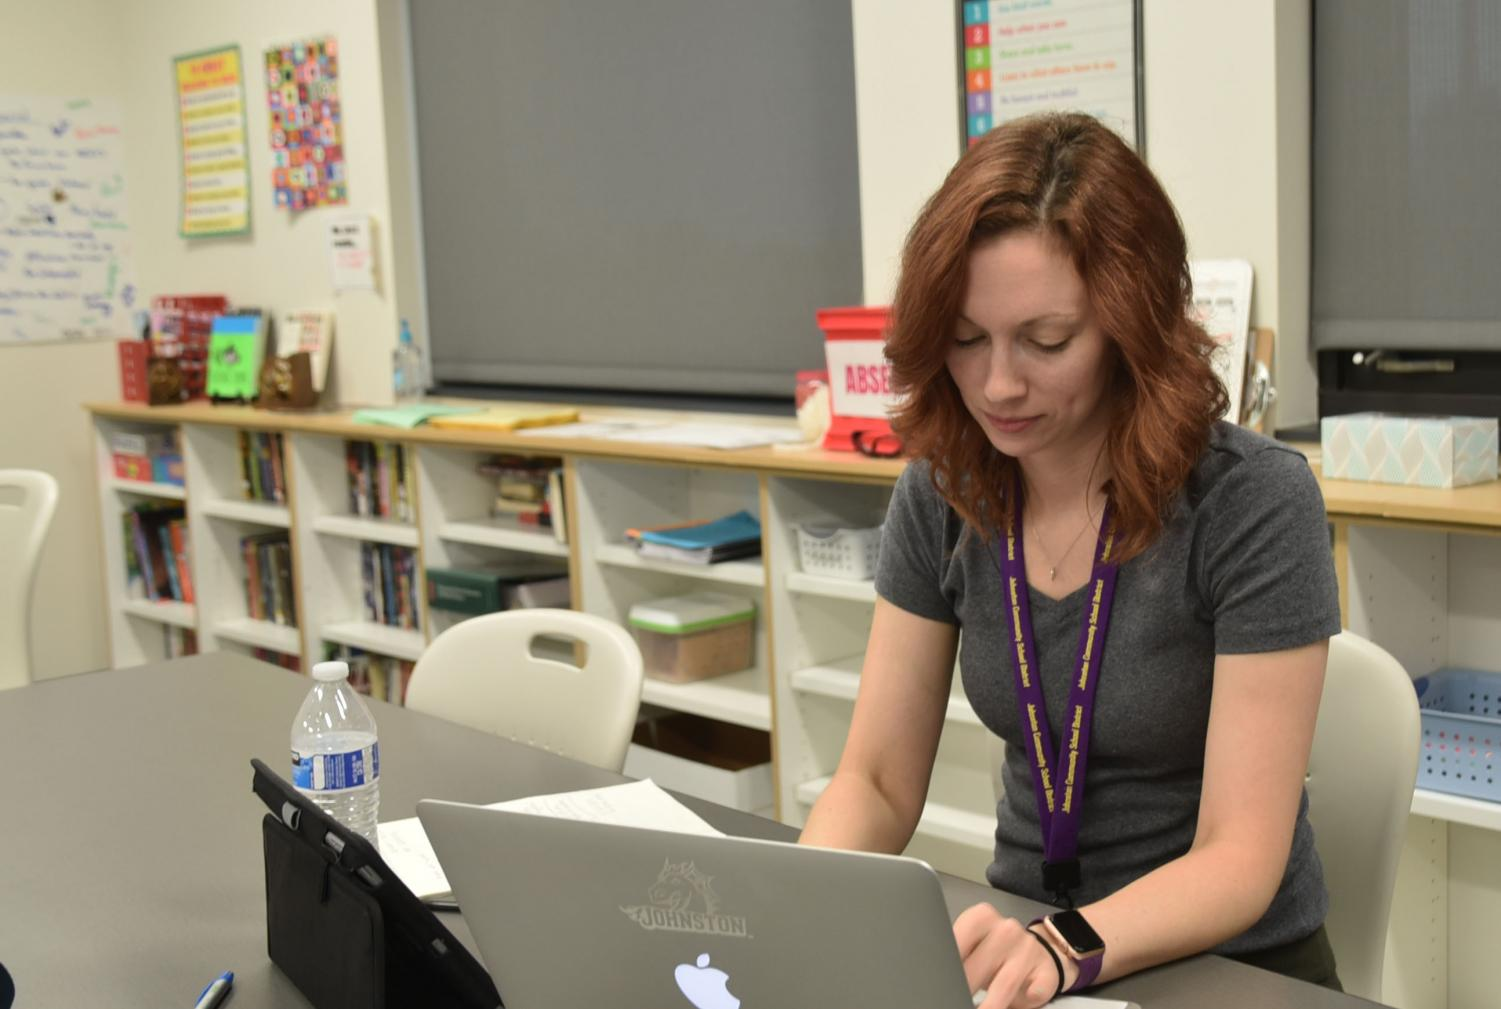 Sarah Love checking her emails before her class begins.